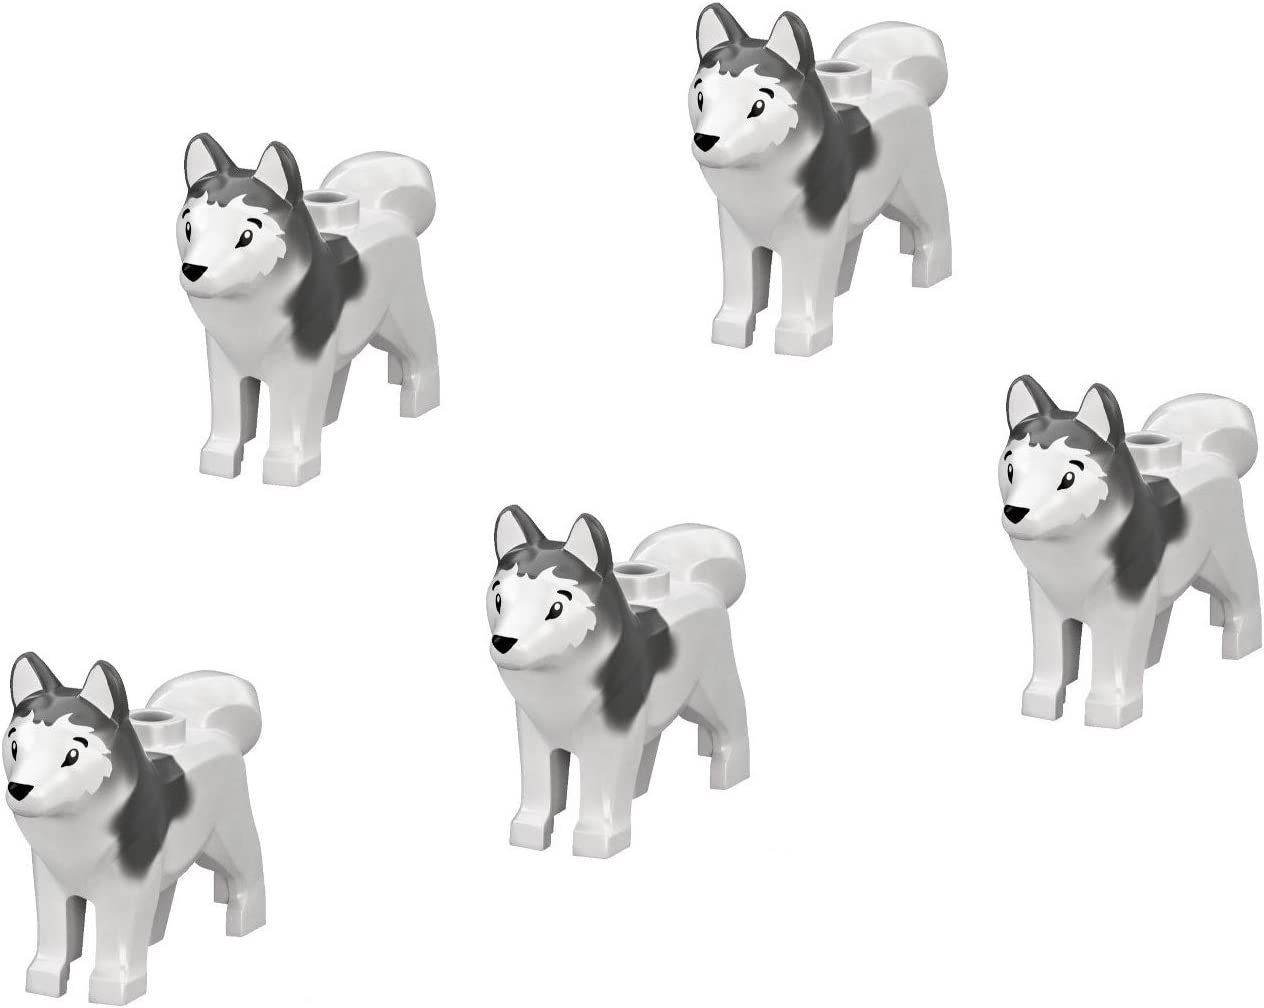 LEGO Minifigure - Arctic Siberian Husky Dog Animal (Pack of 5 for Sled Team) Pet Puppy Loose